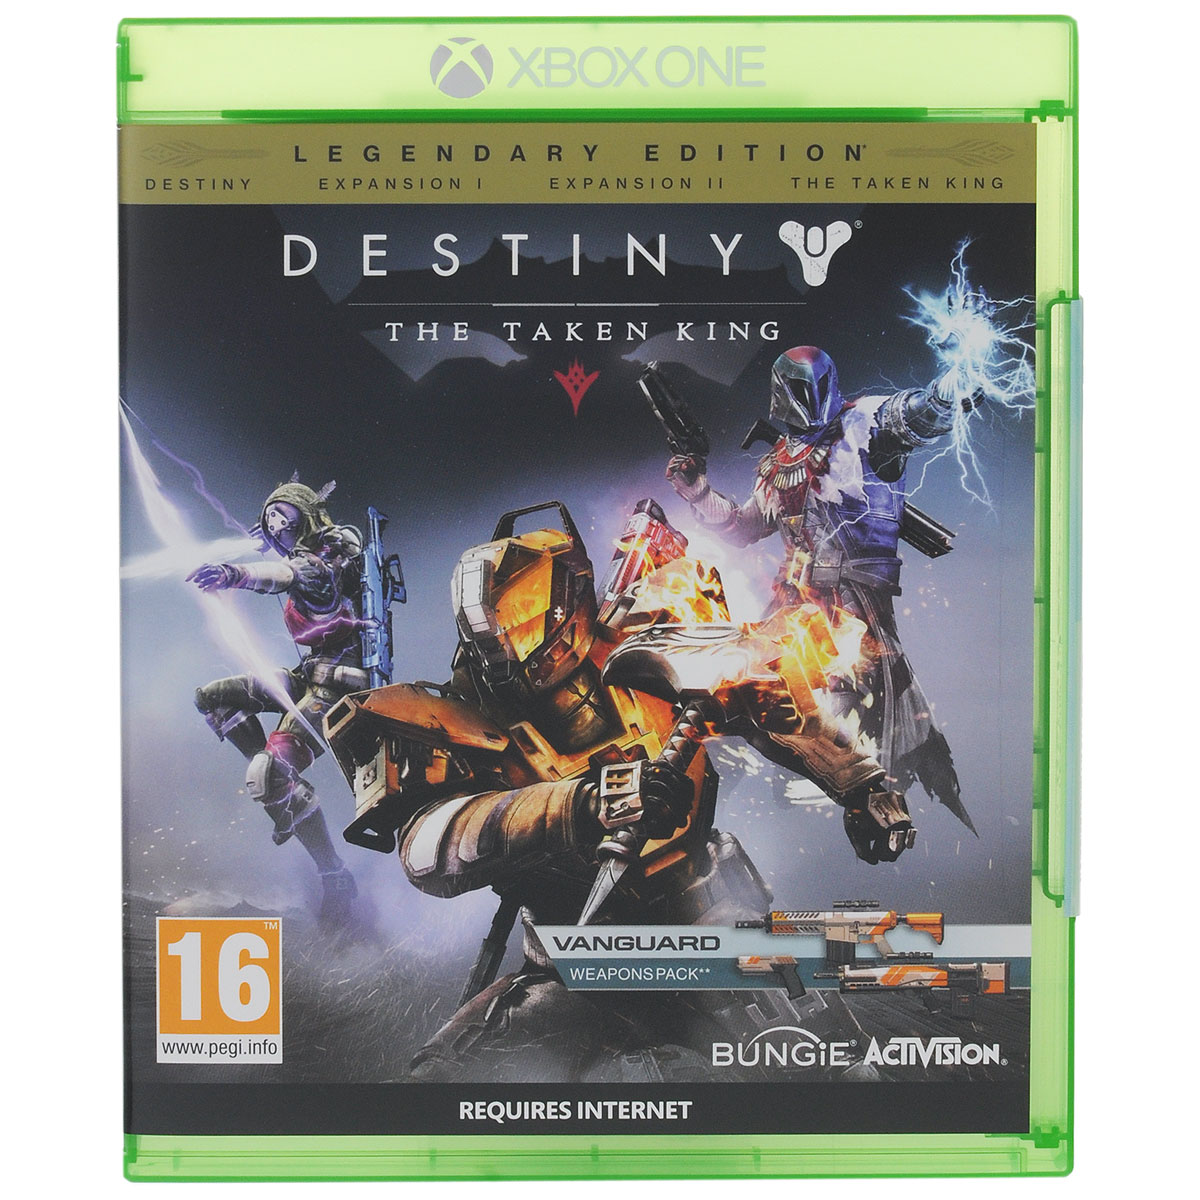 Destiny: The Taken King (Xbox One), Bungie Software